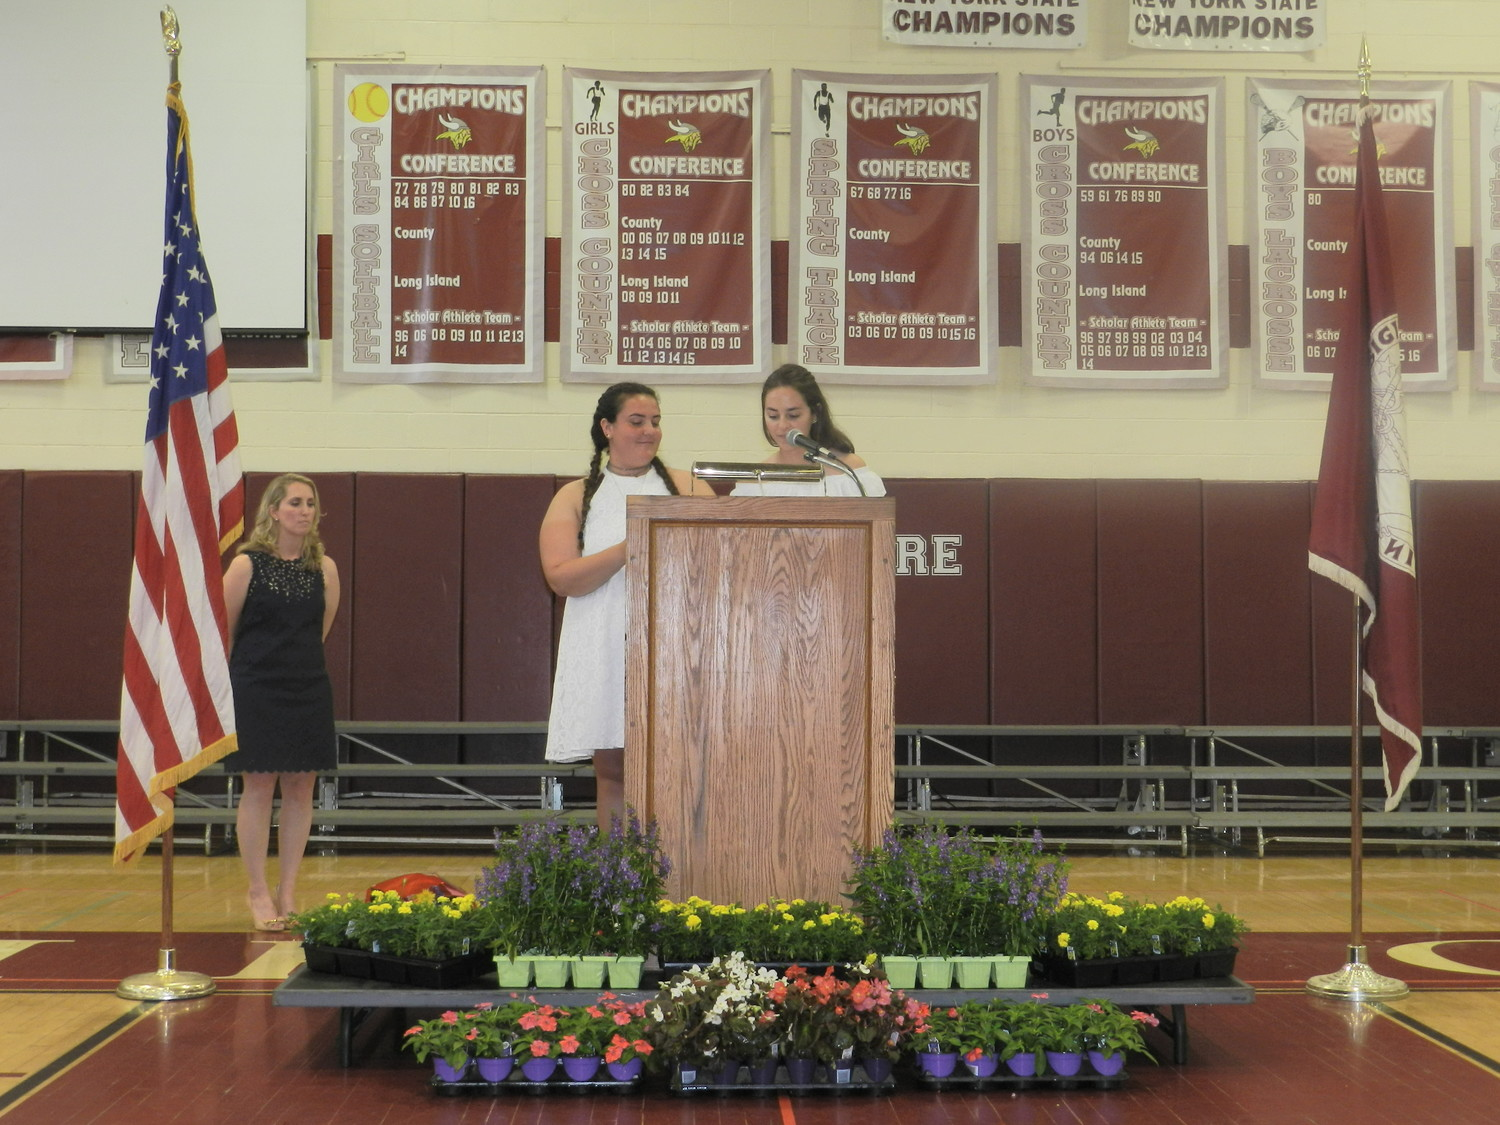 Student Government Organization co-presidents Lindsey Golden and Emilie Biolsi, at podium, addressed the student body one last time.